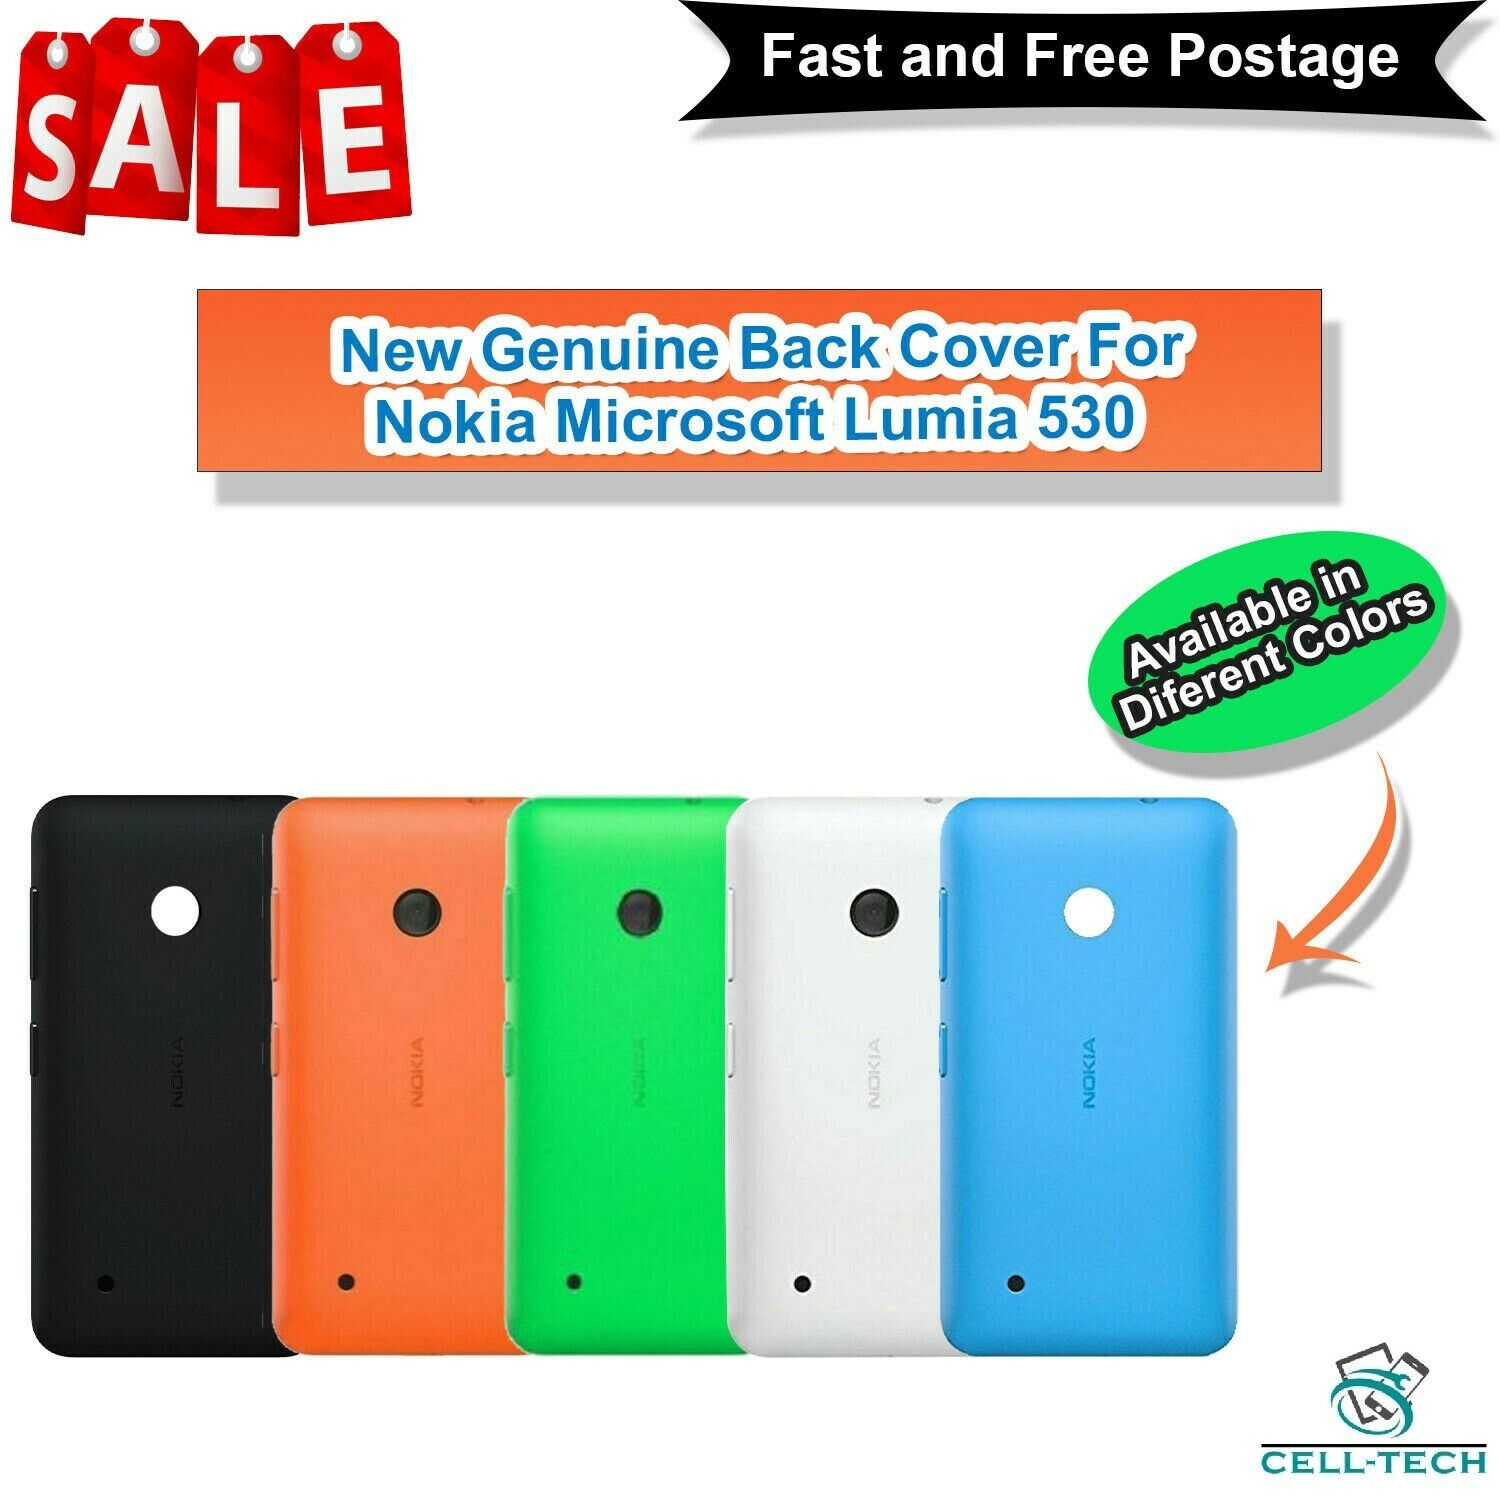 New Nokia Lumia 530 4gb Windows 3g Wifi Gps 5mp 4 Unlocked Whatsapp Lg L20 White 1 Of 5free Shipping